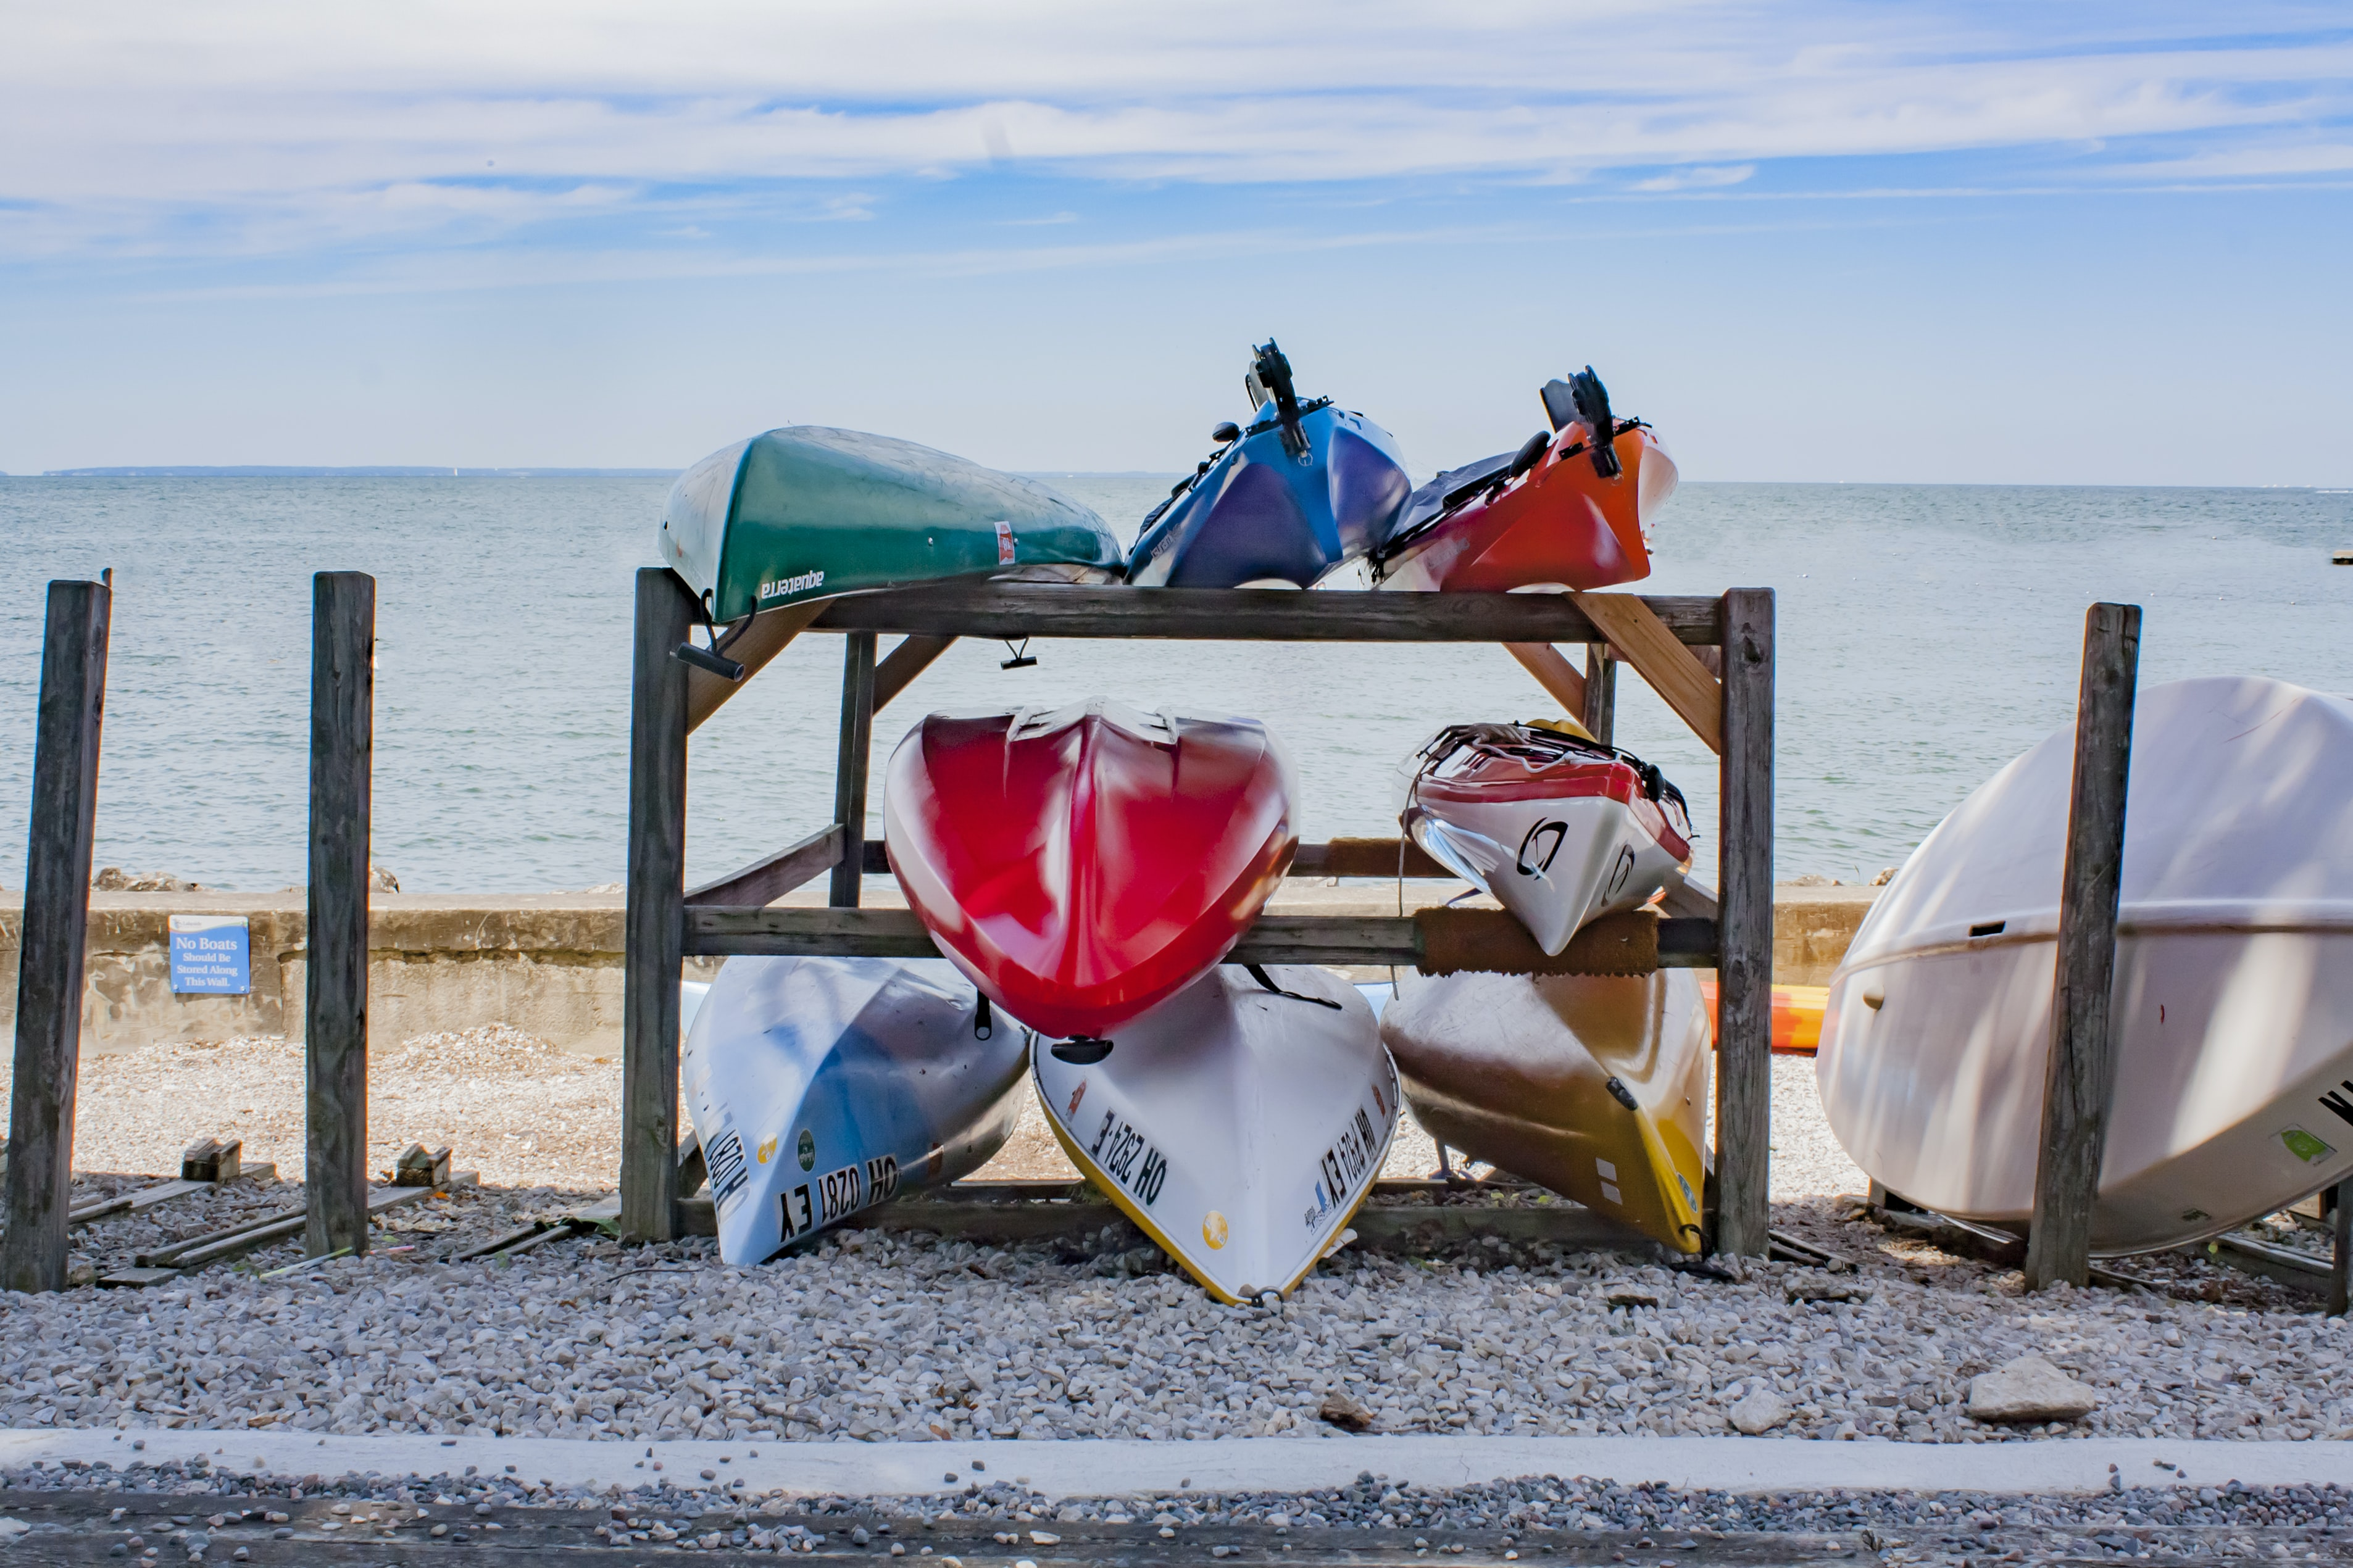 canoes on rack near body of water